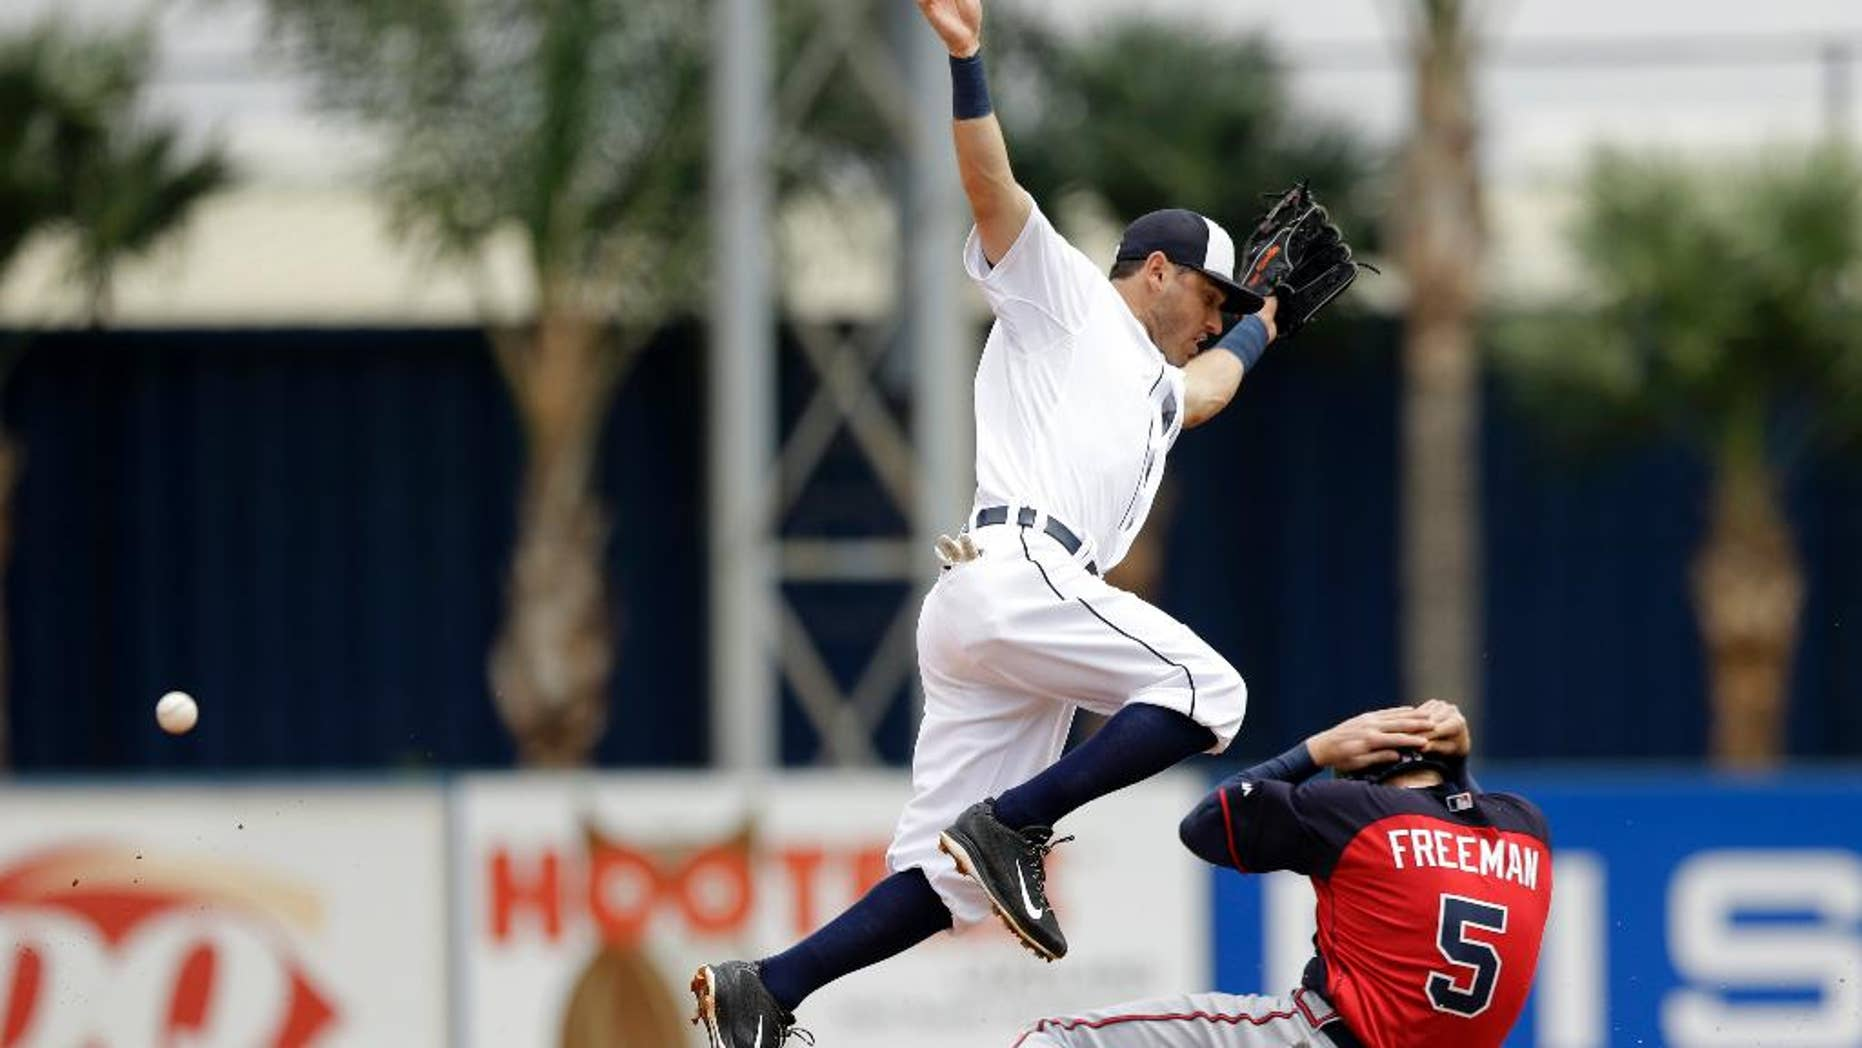 Detroit Tigers second baseman Ian Kinsler loses control of the ball as Atlanta Braves first baseman Freddie Freeman, right, slides under for a steal during the third inning of a spring exhibition baseball game in Lakeland, Fla., Tuesday, March 25, 2014. (AP Photo/Carlos Osorio)